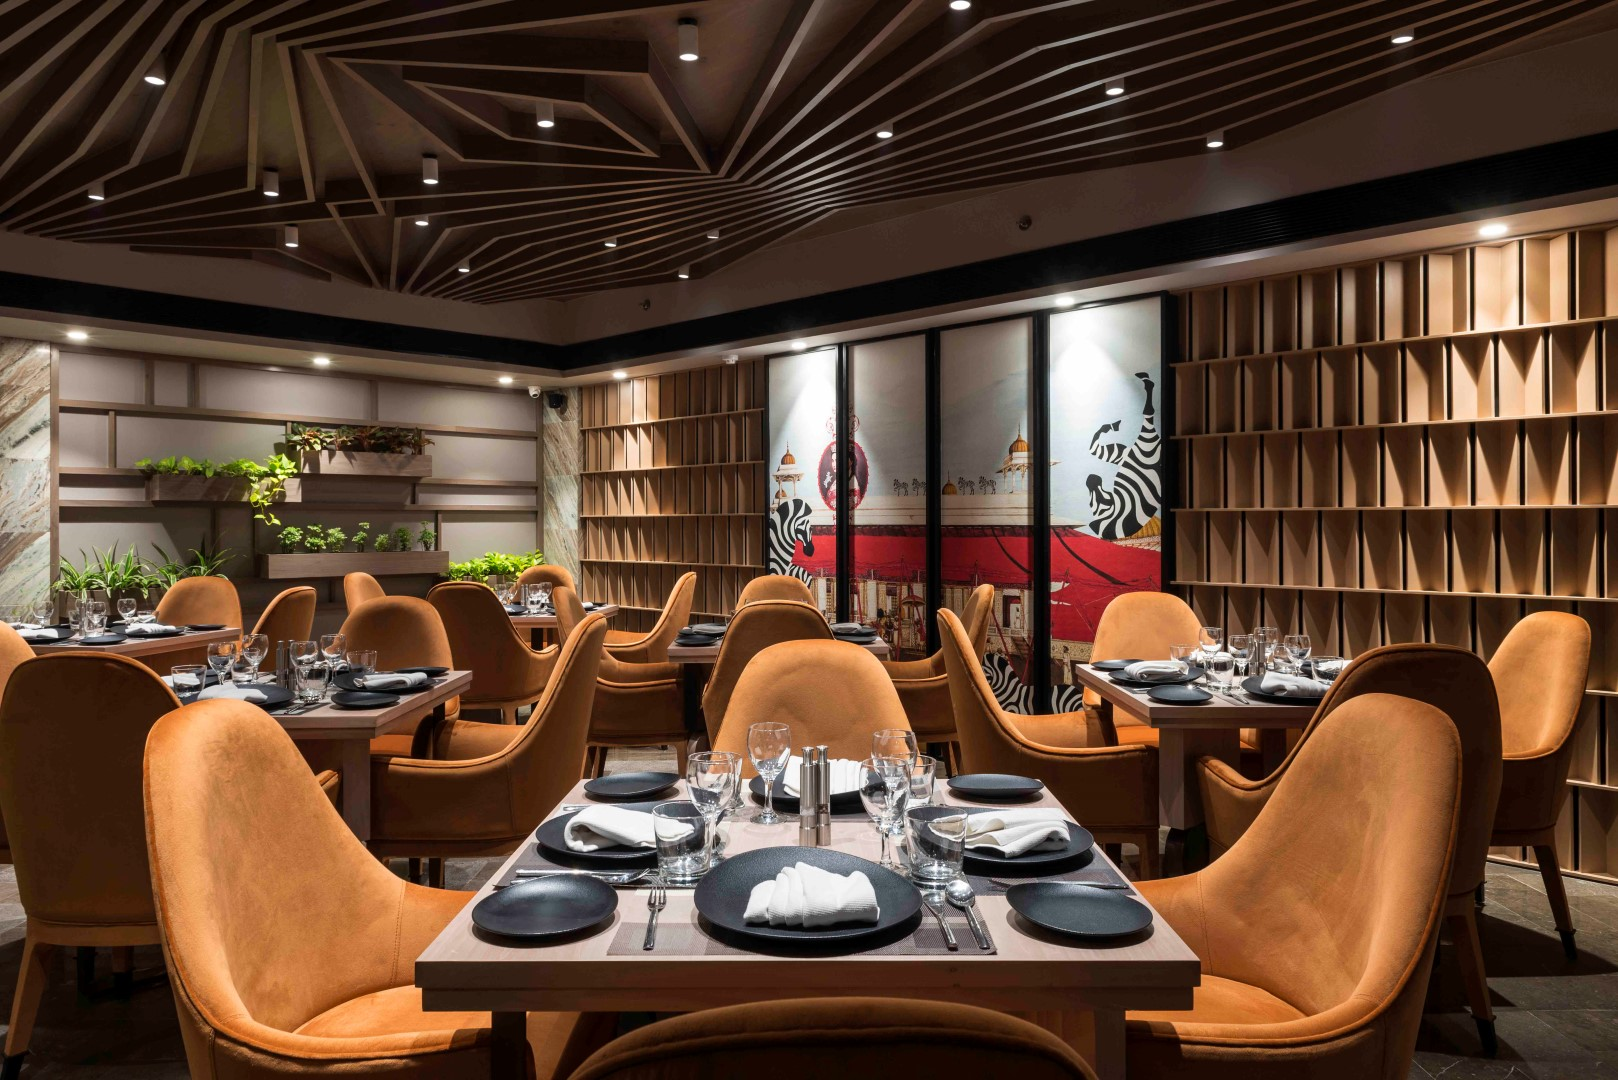 Best-I-Restaurant-I-Interior-I-Design.